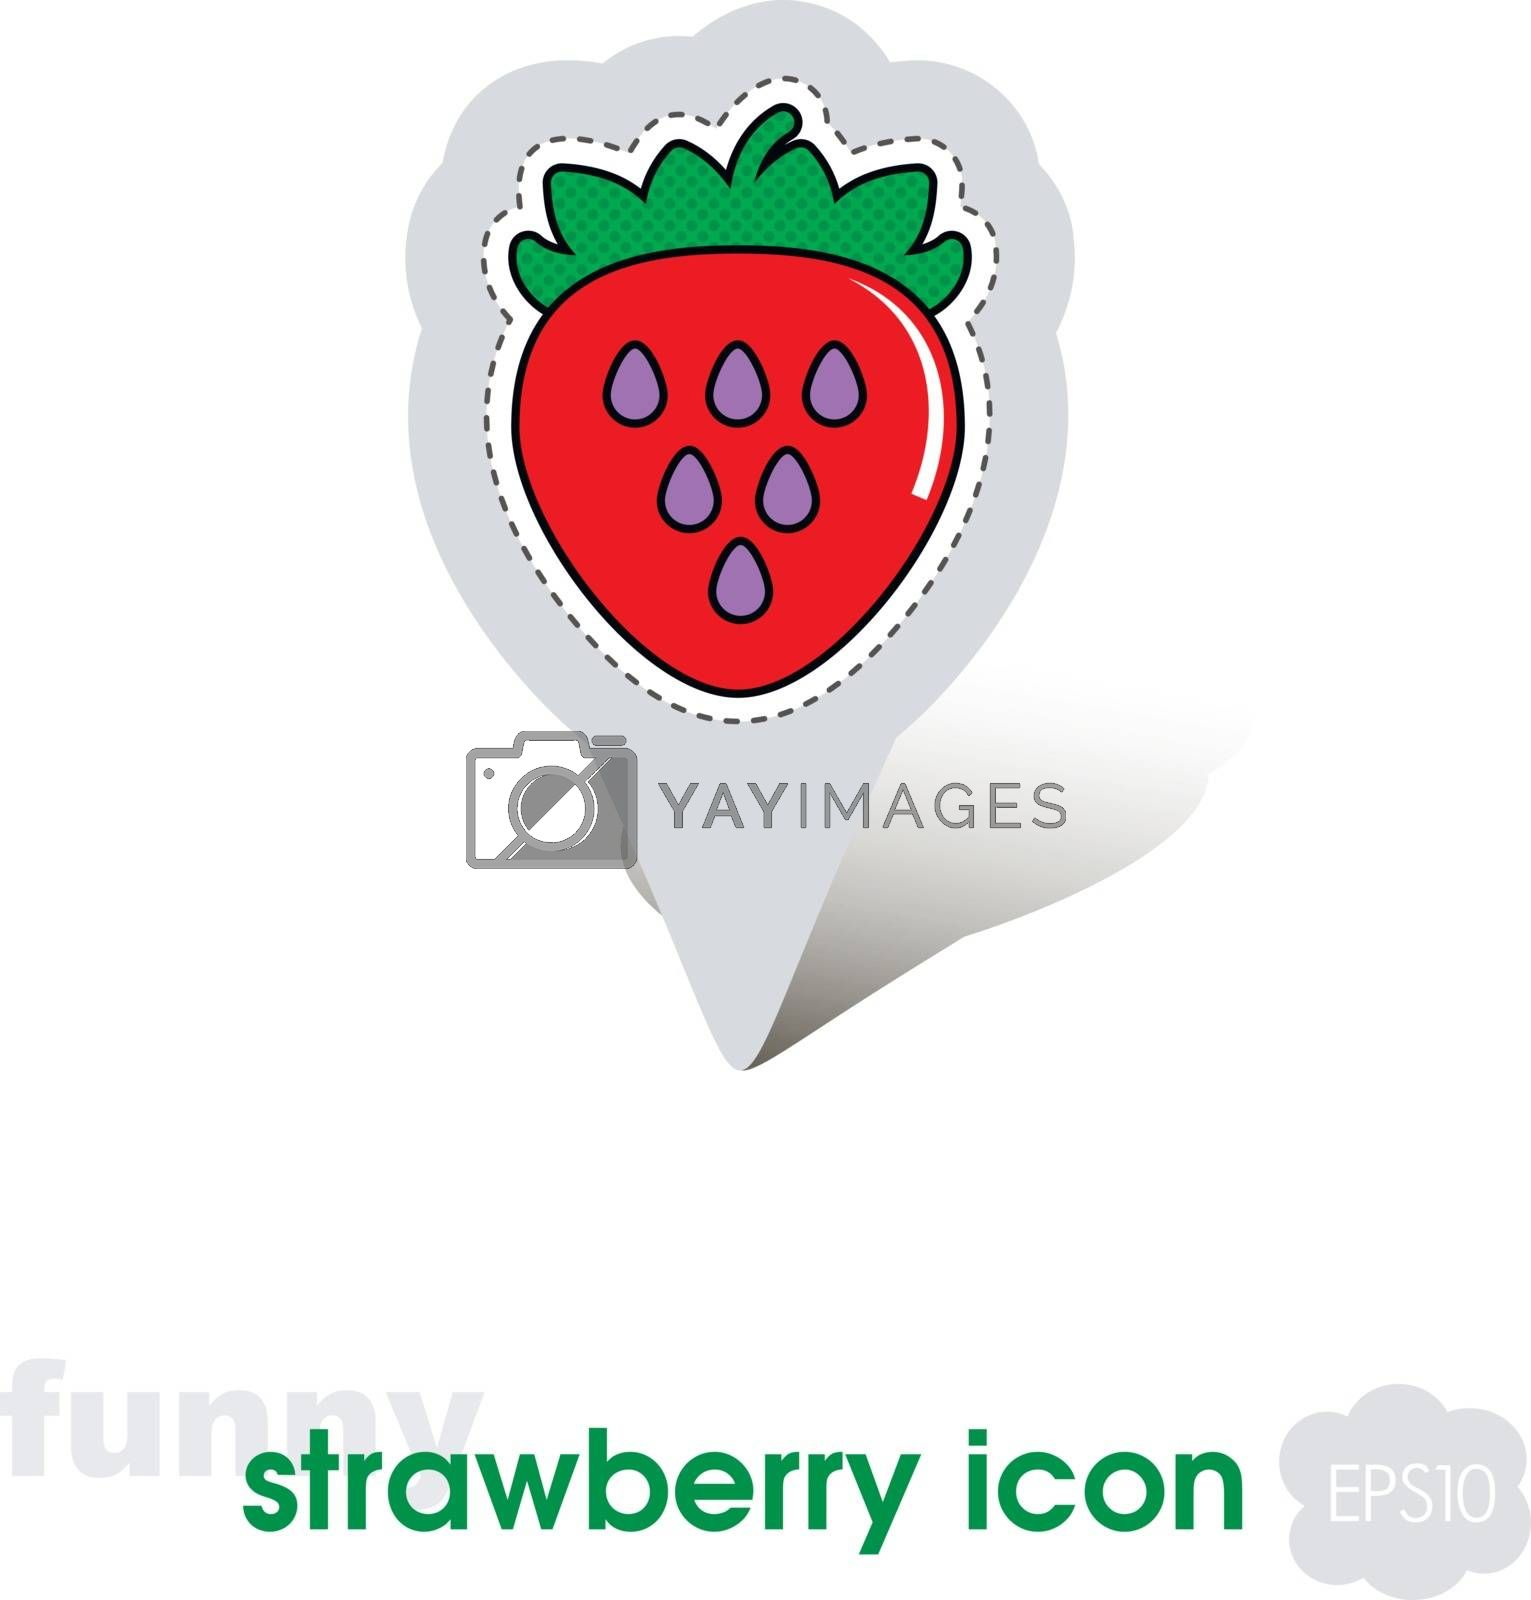 Strawberry pin map icon. Strawberry fruit sign by nosik